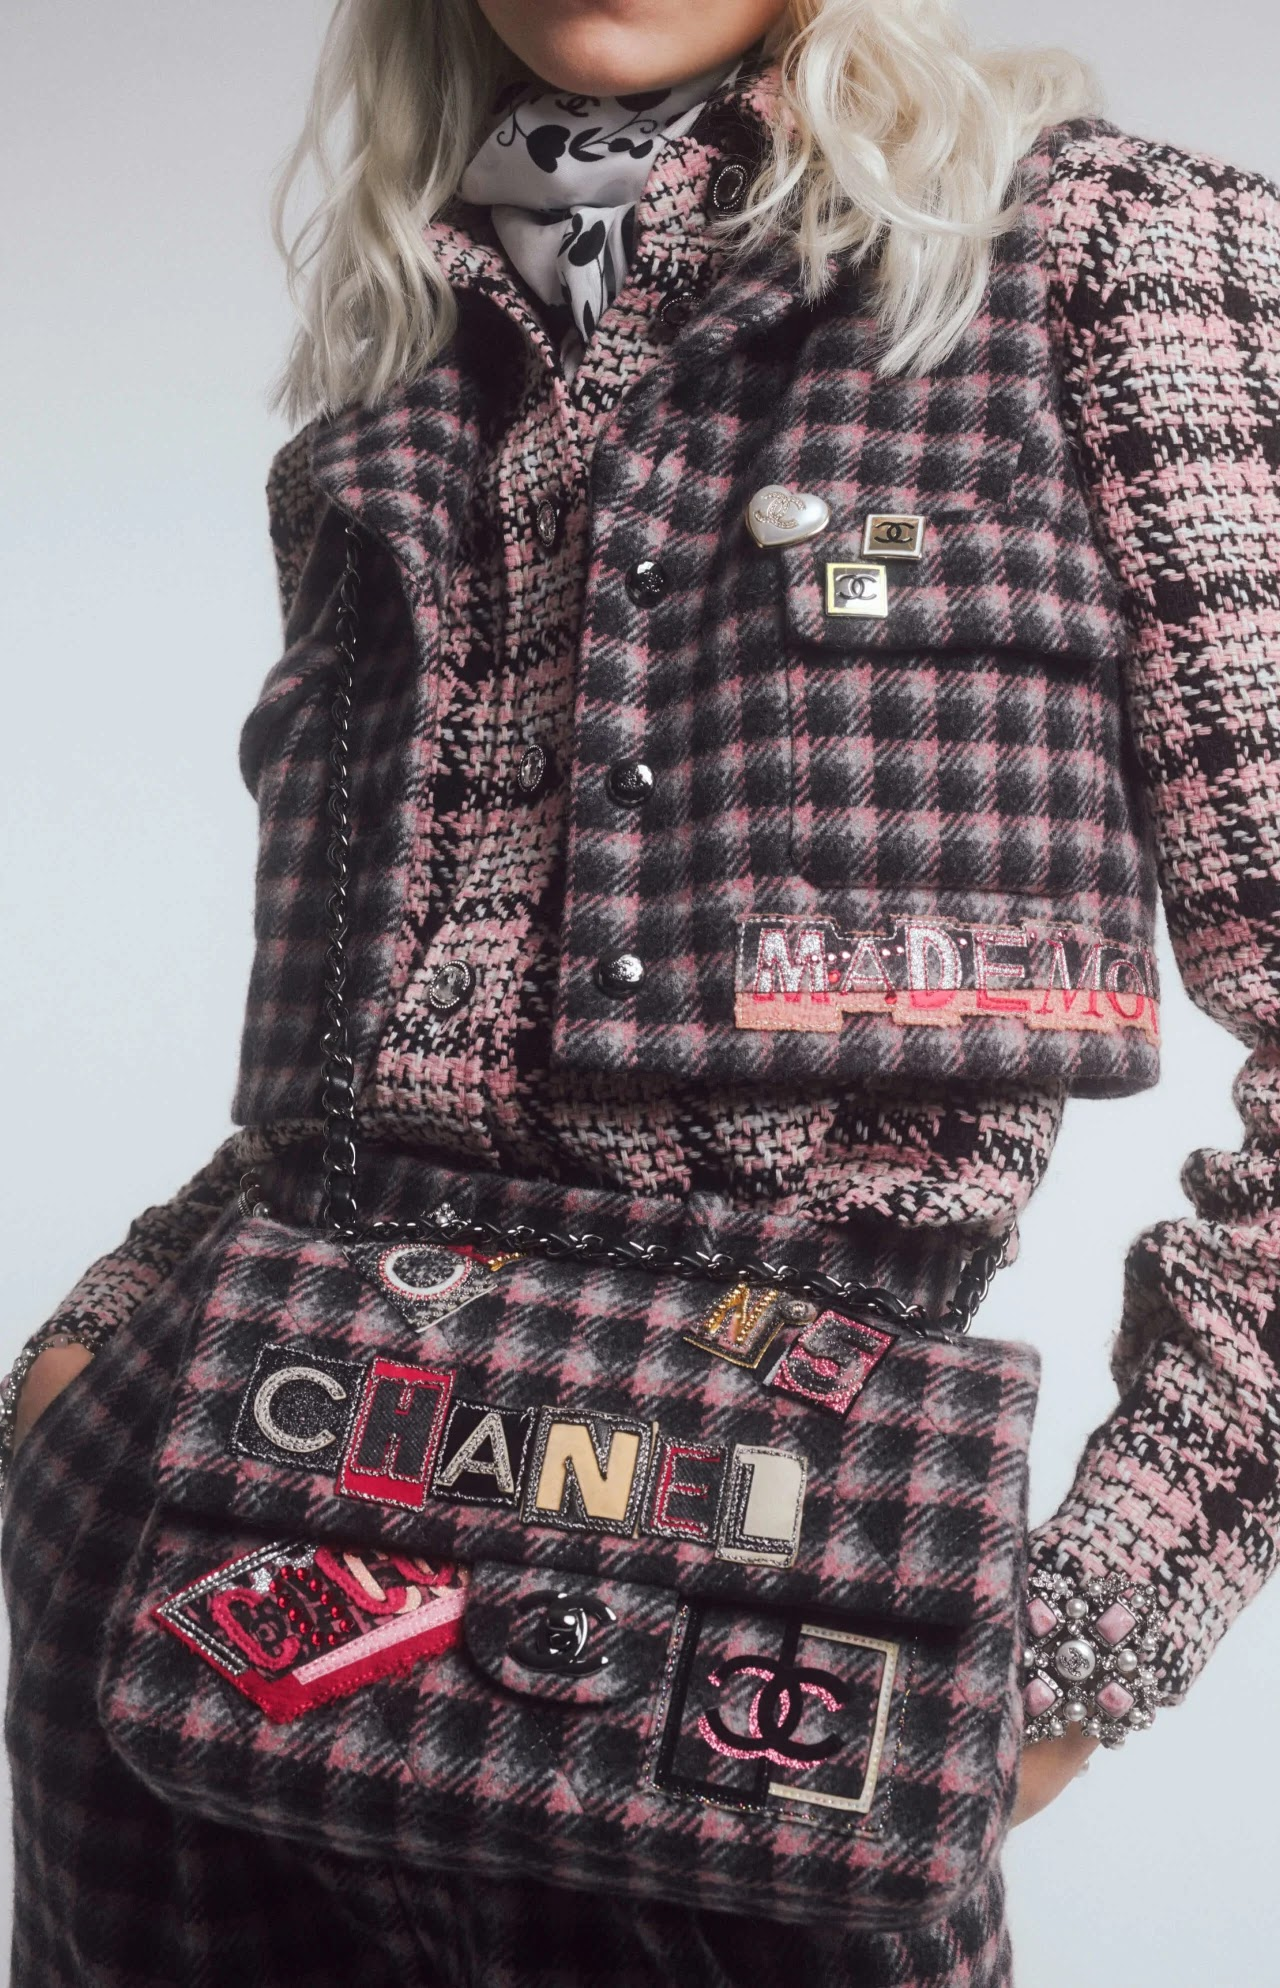 Chanel embroidered tweed flap bag